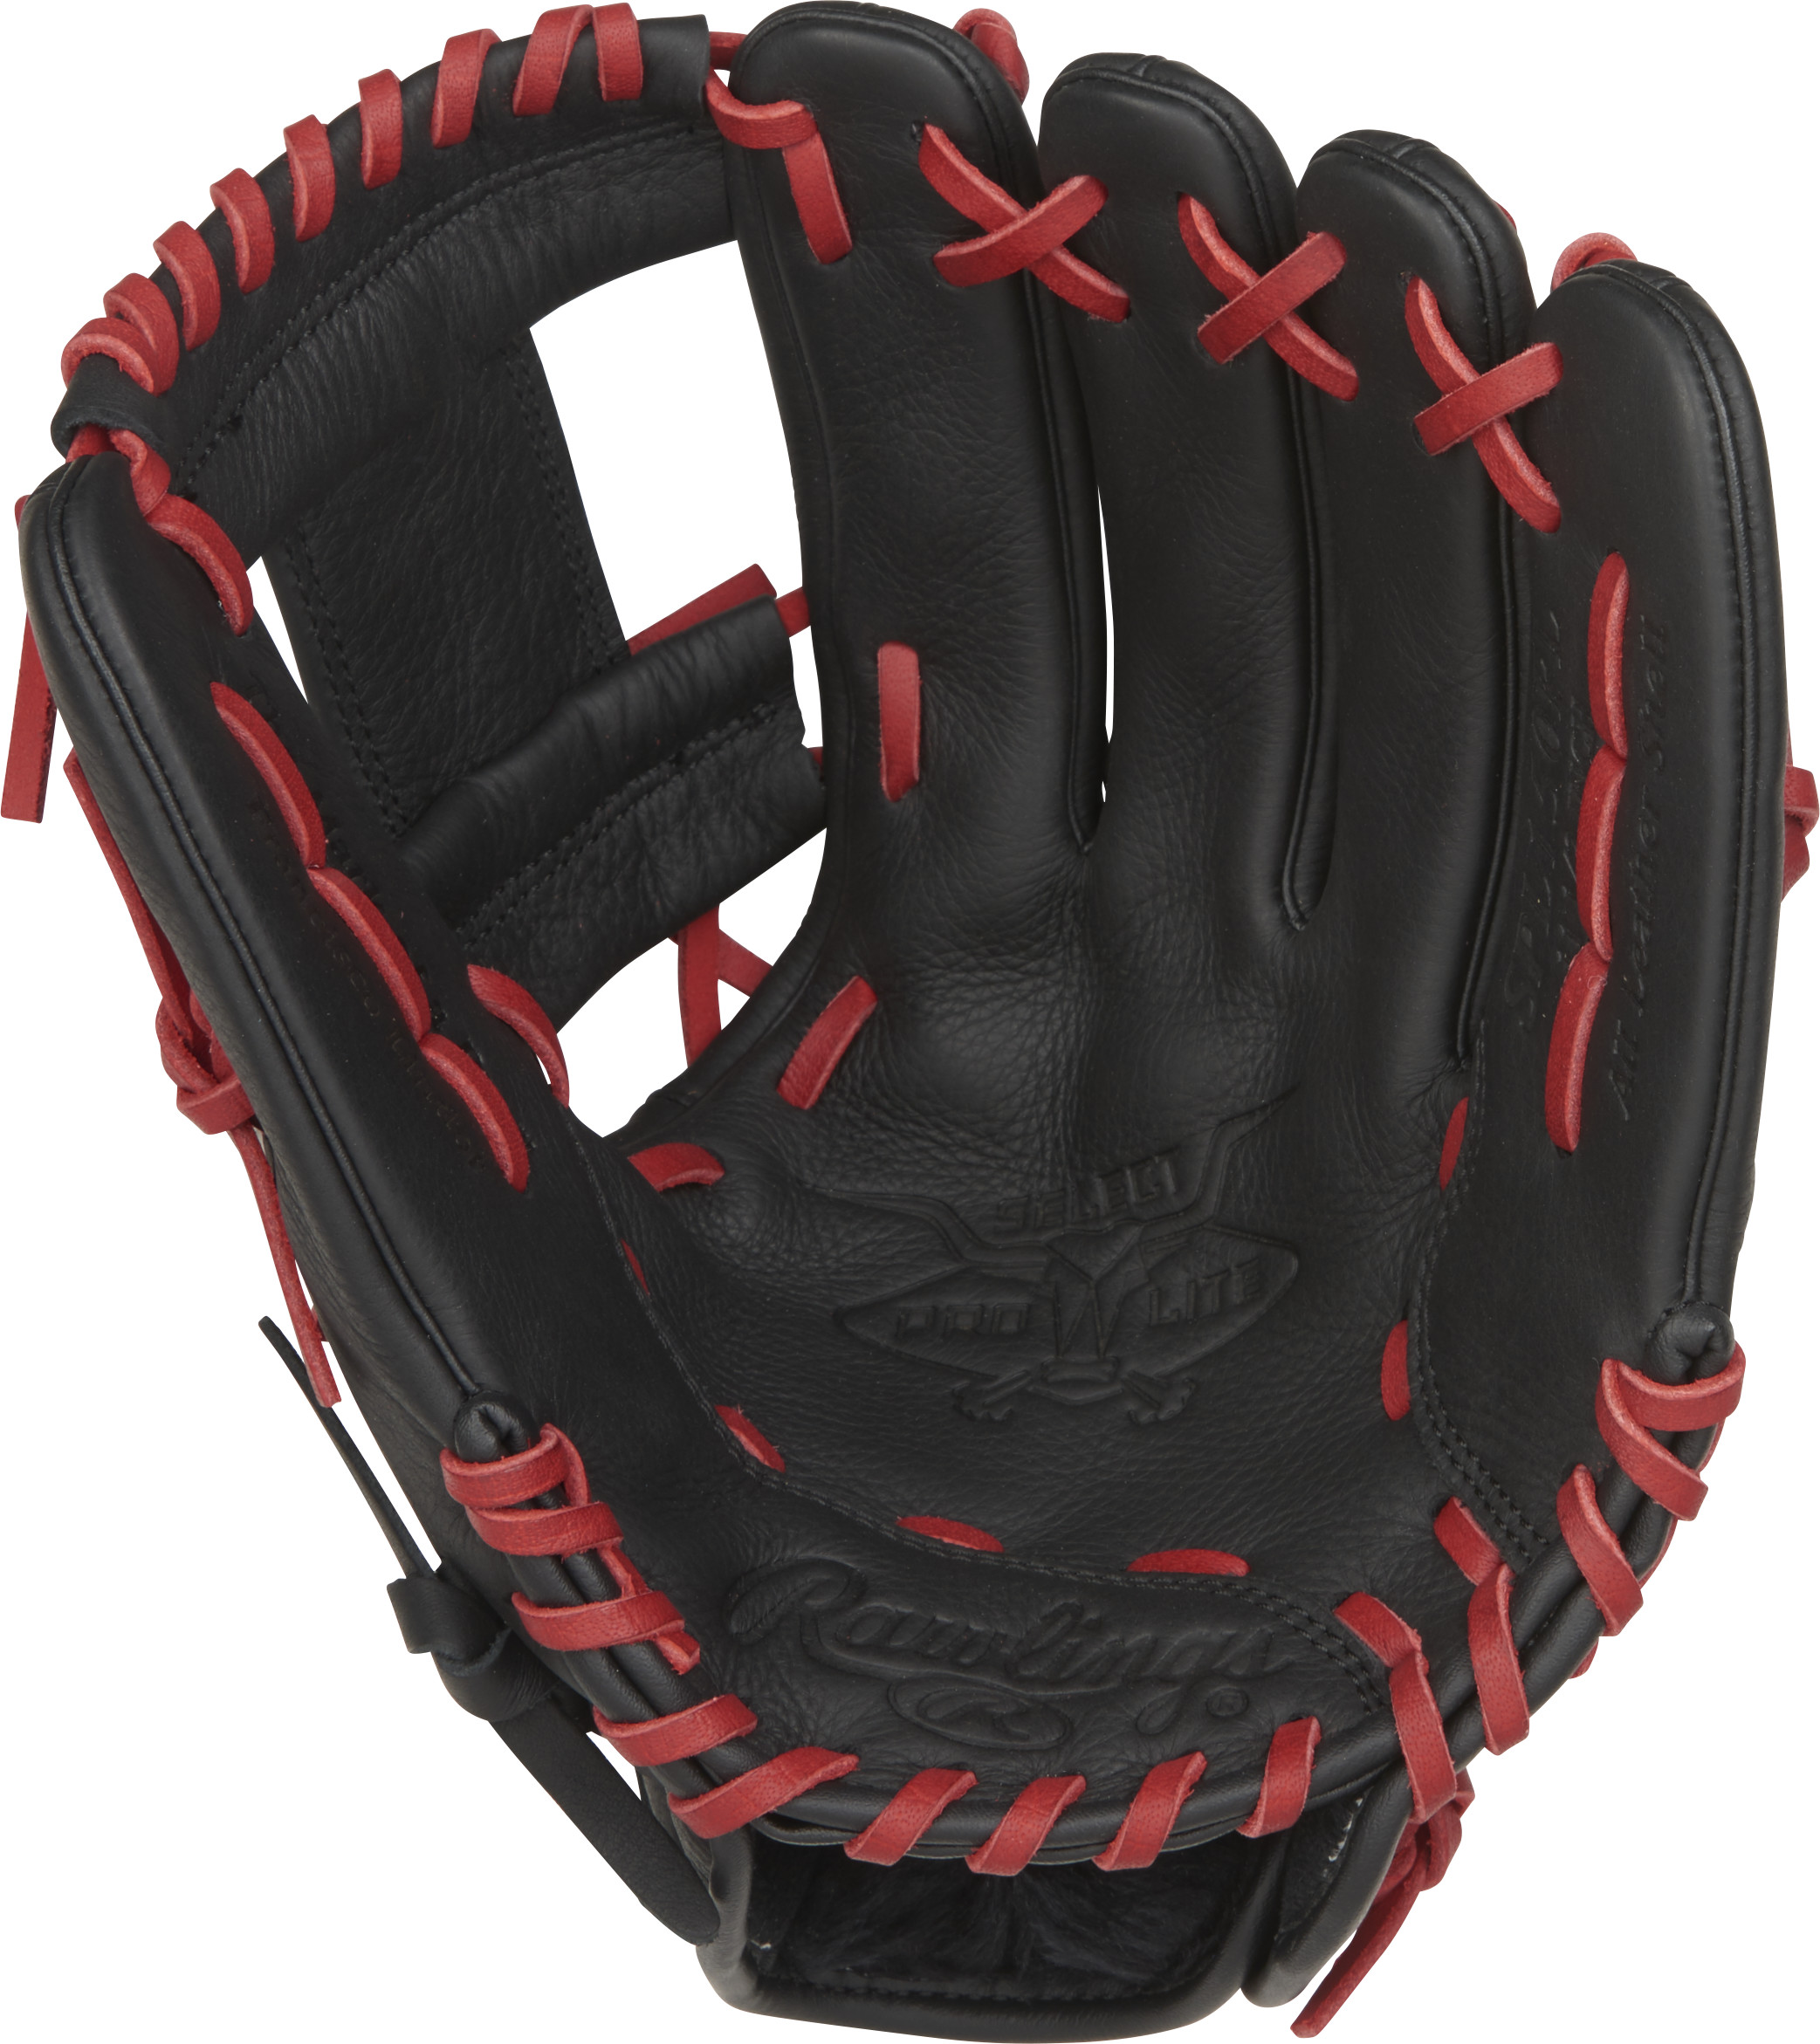 http://www.bestbatdeals.com/images/gloves/rawlings/SPL150FL-1.jpg